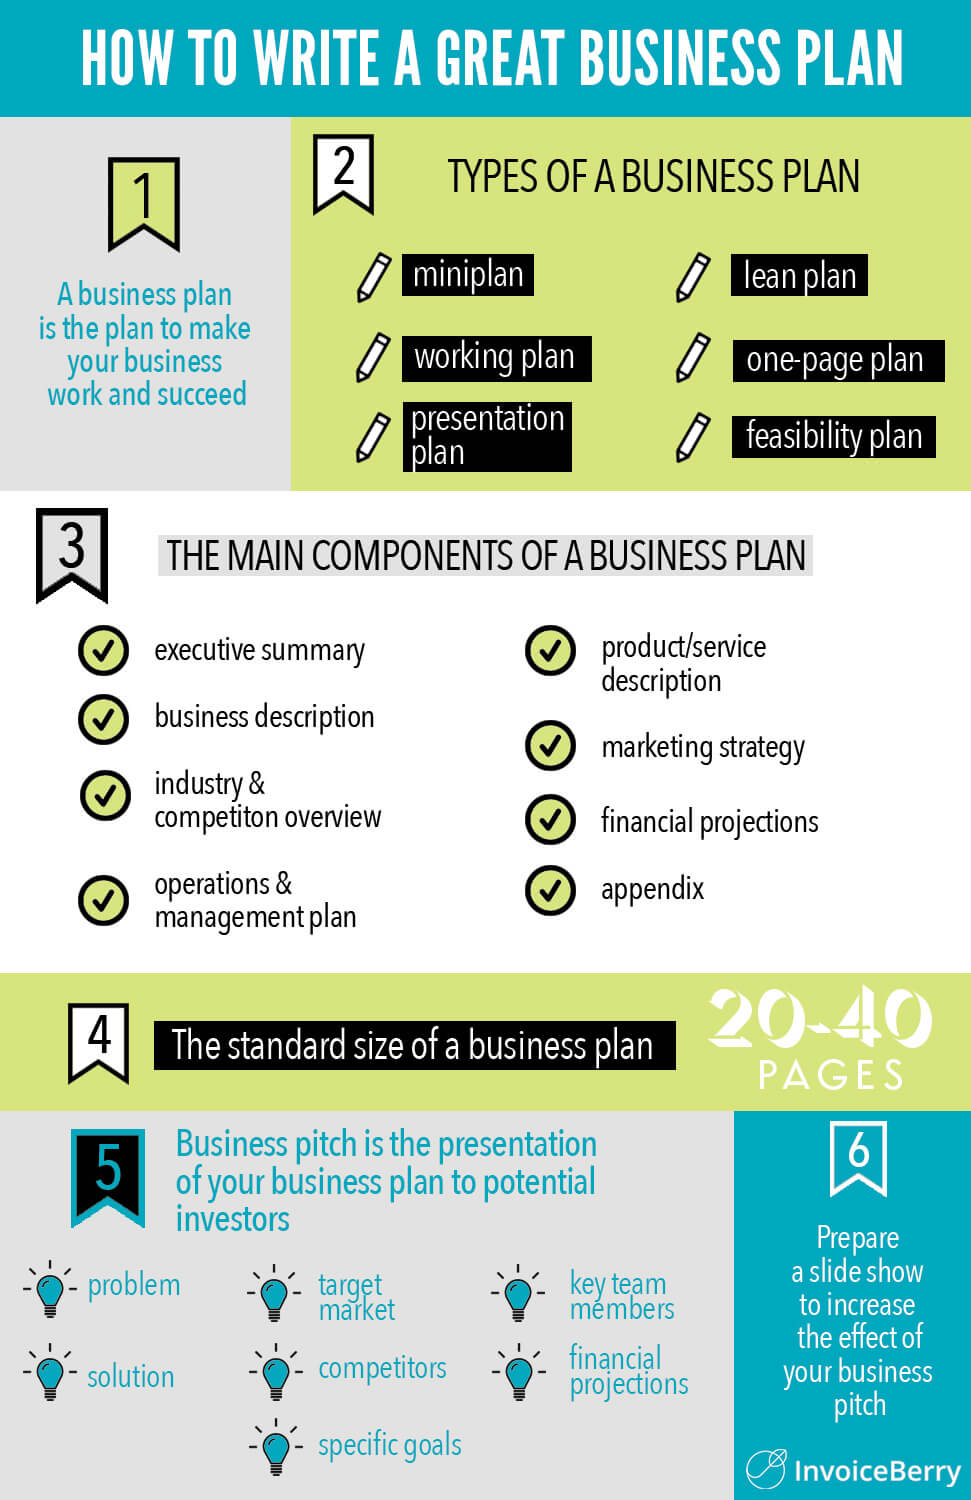 Why Business Plans Don't Get Funded